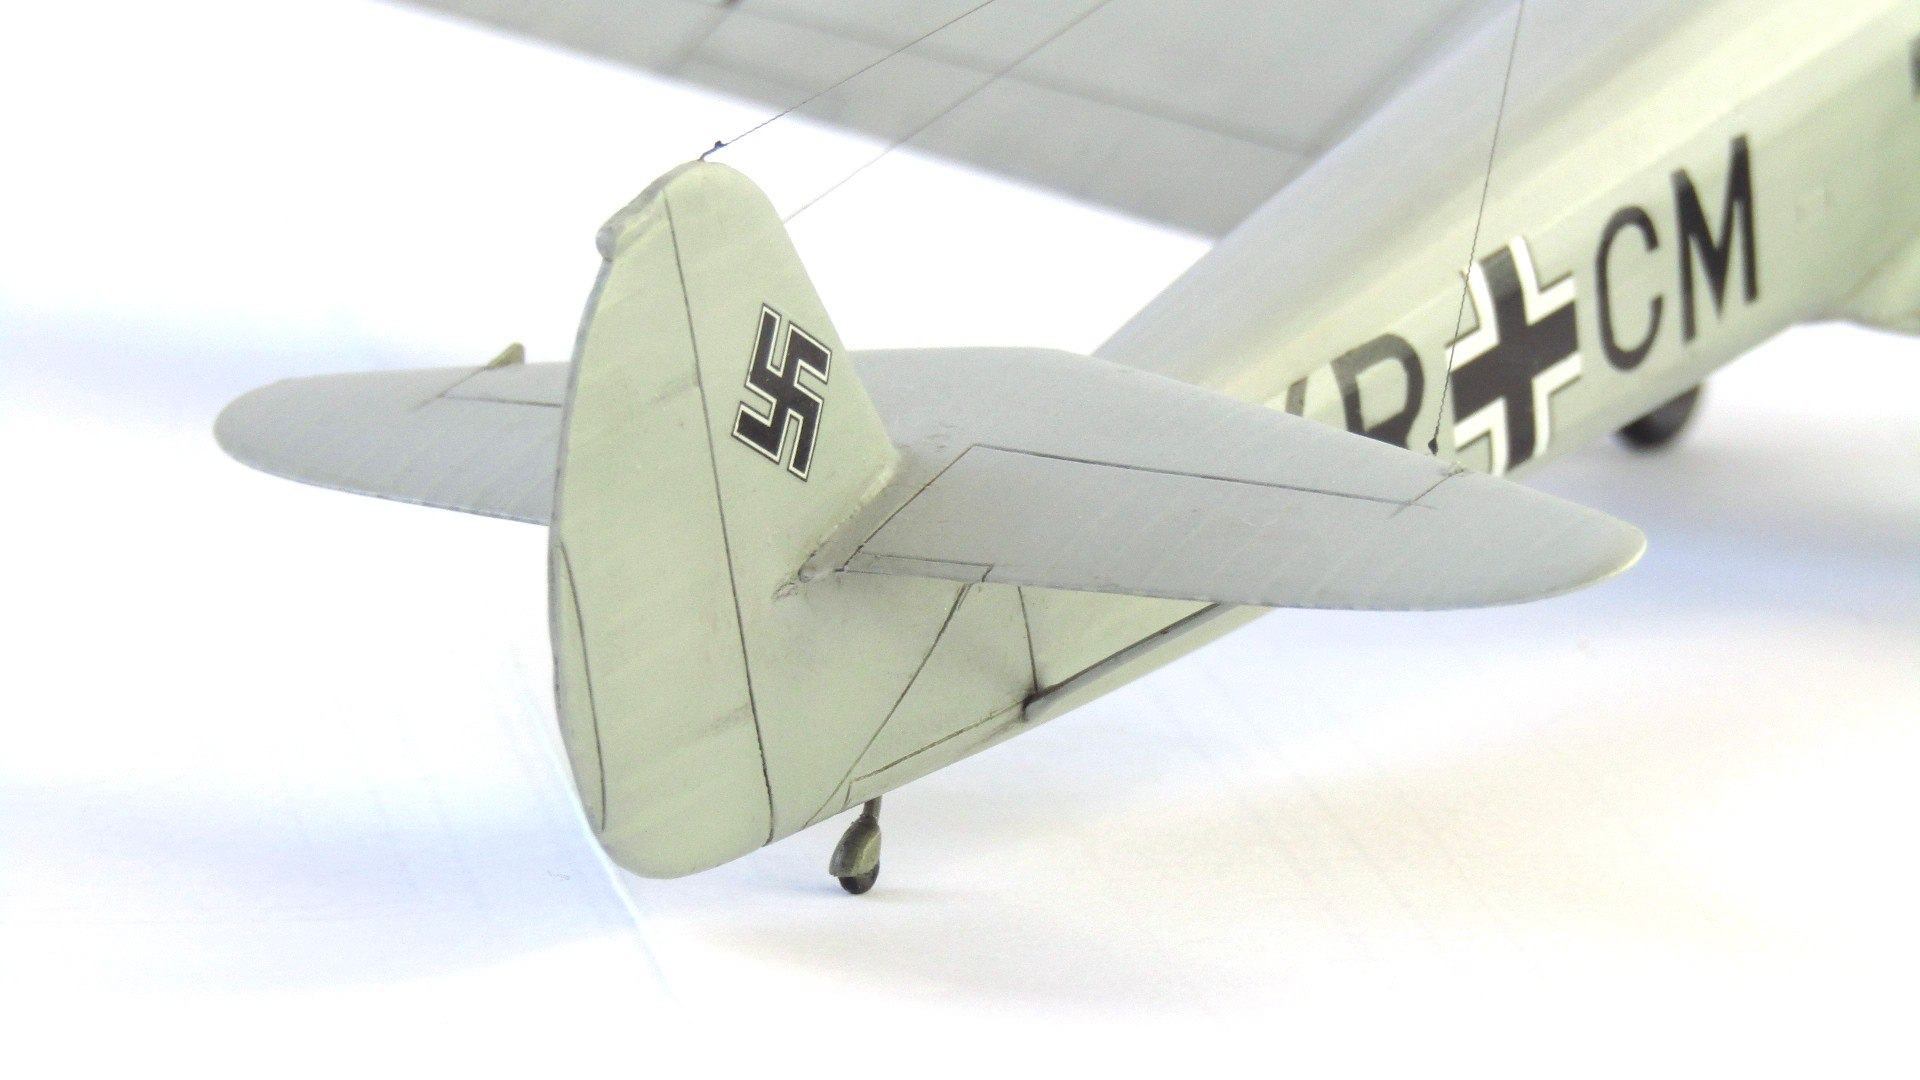 FW - 58C weihe 1/72 (Special Hobby) Lh7GgeLFhEE